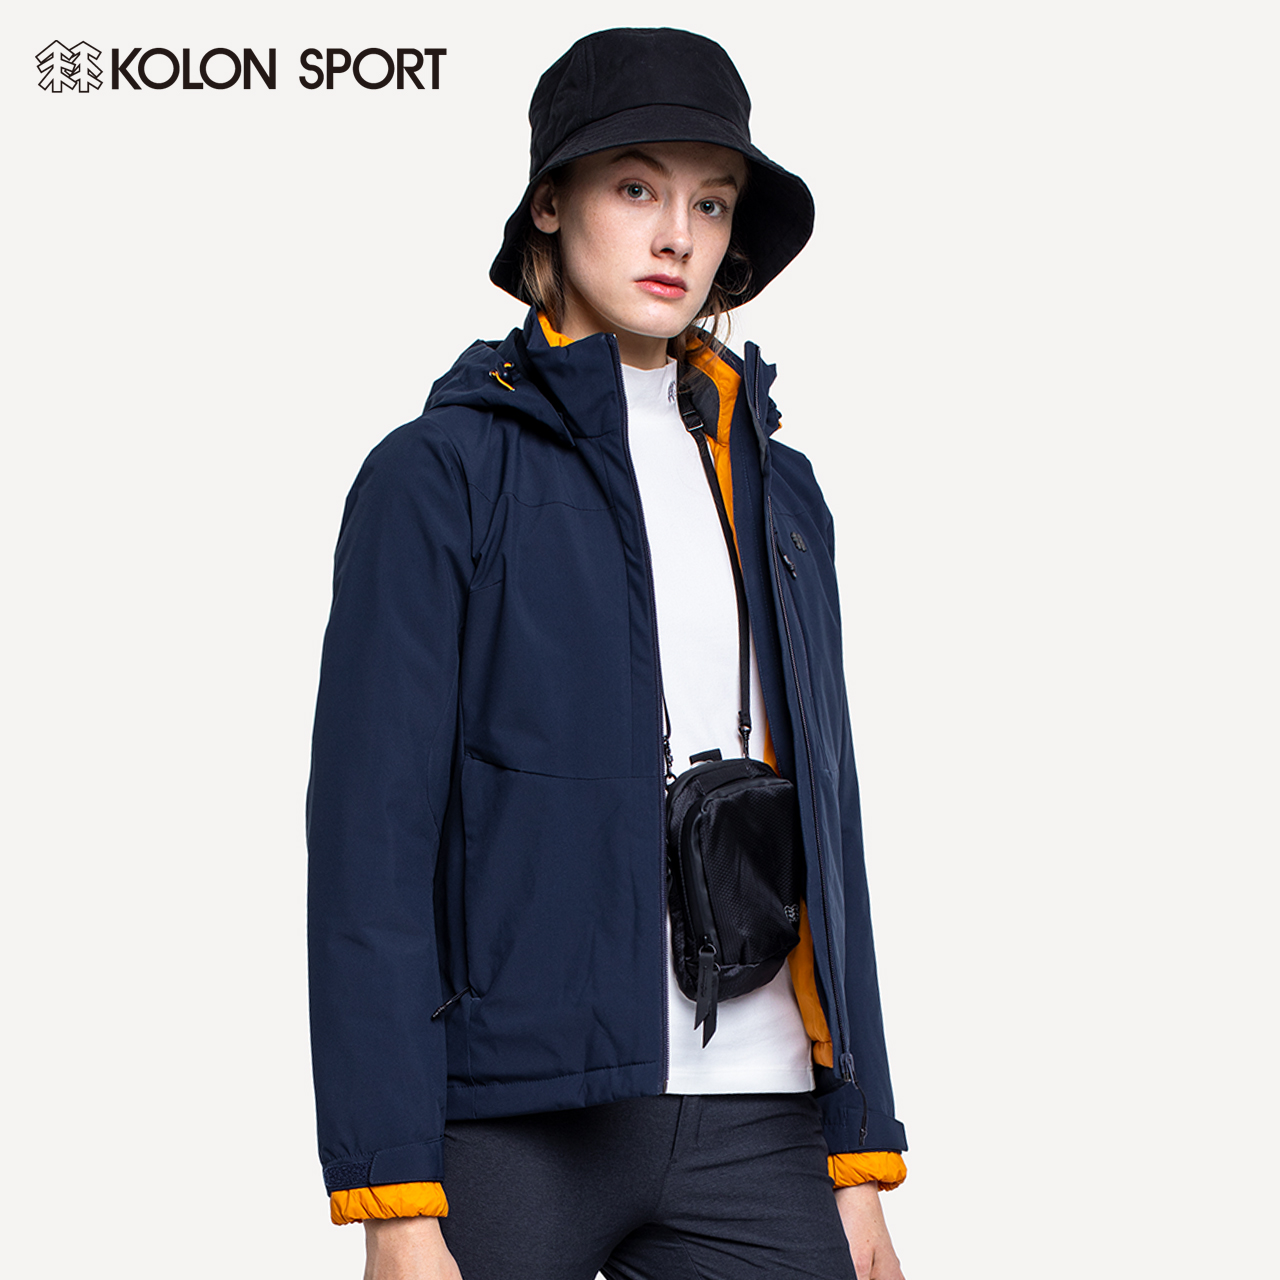 KOLONSPORT Coron stormdress women's three-in-one autumn and winter down-down inner bile storm jacket warm jacket